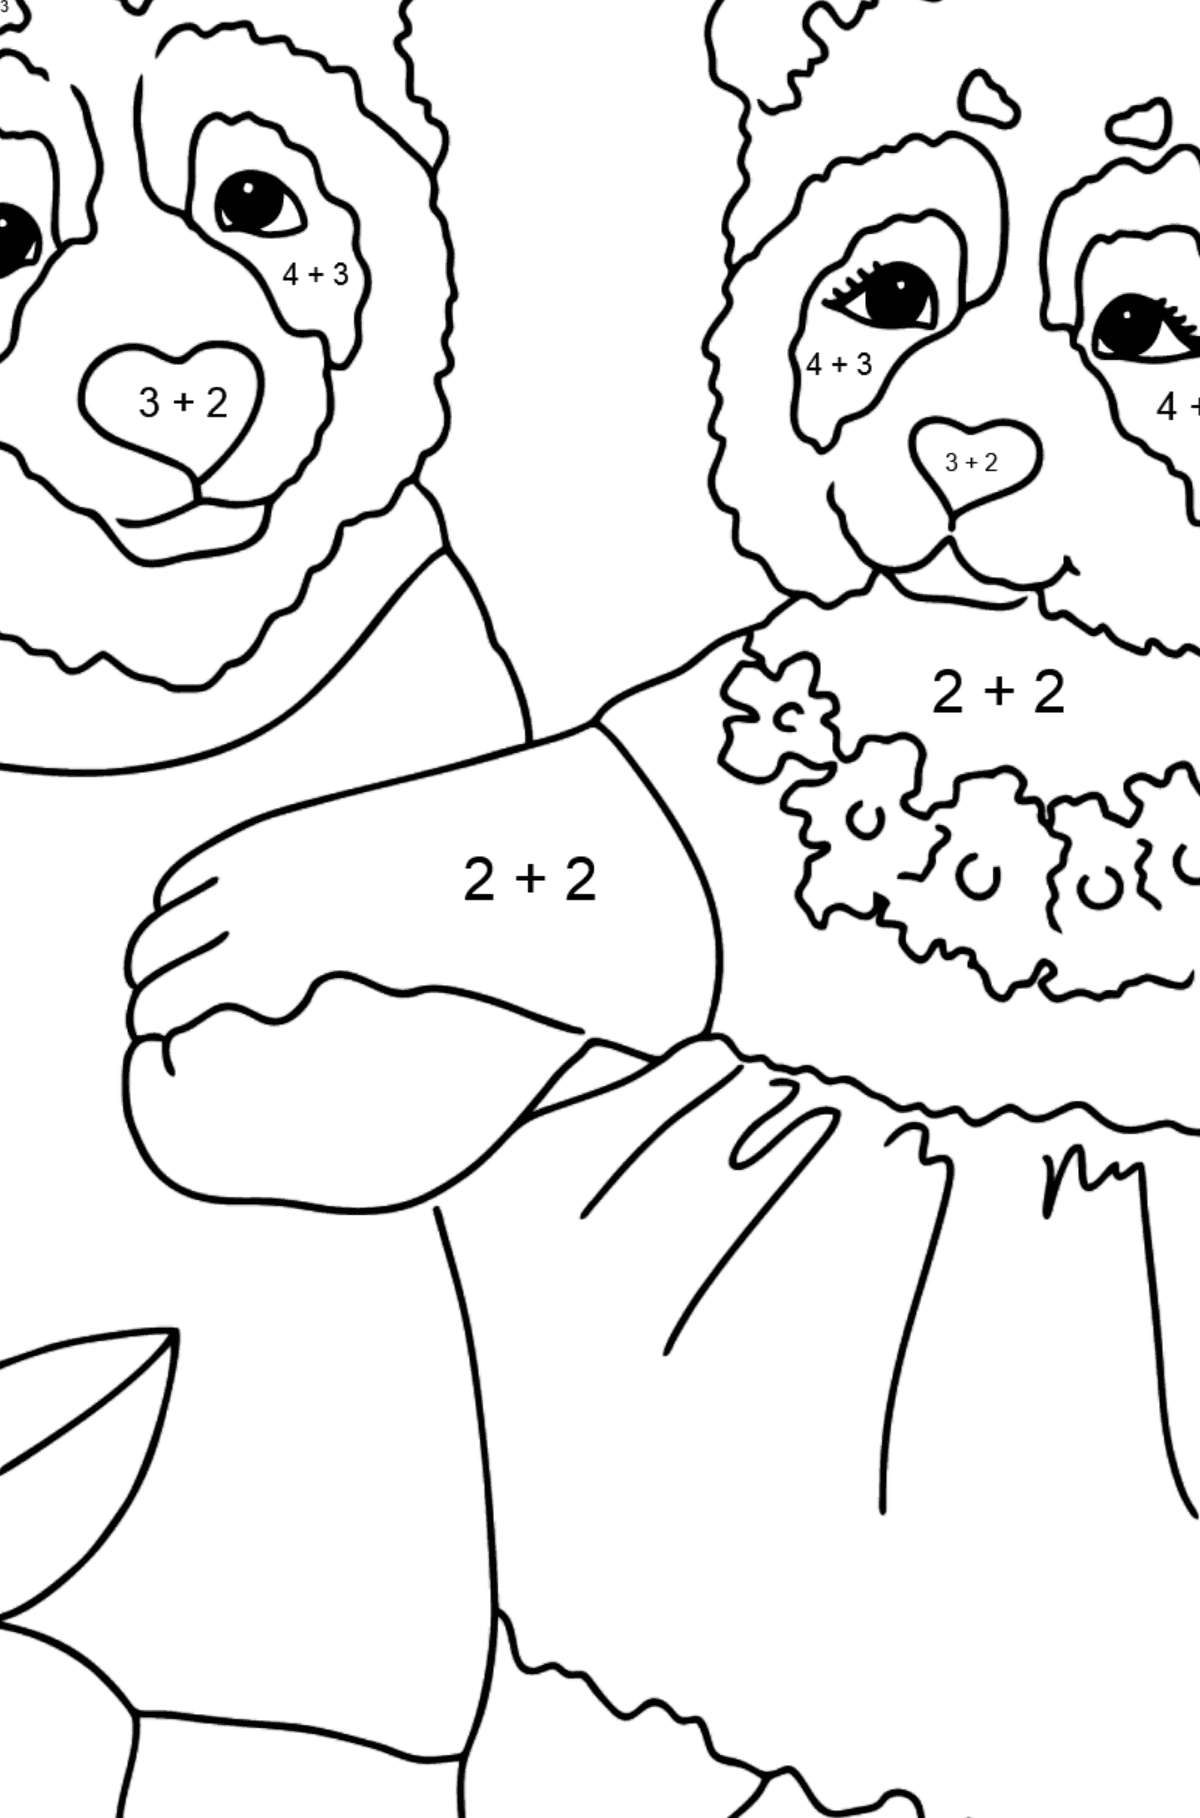 Coloring Page - Pandas Taking a Walk - Math Coloring - Addition for Kids